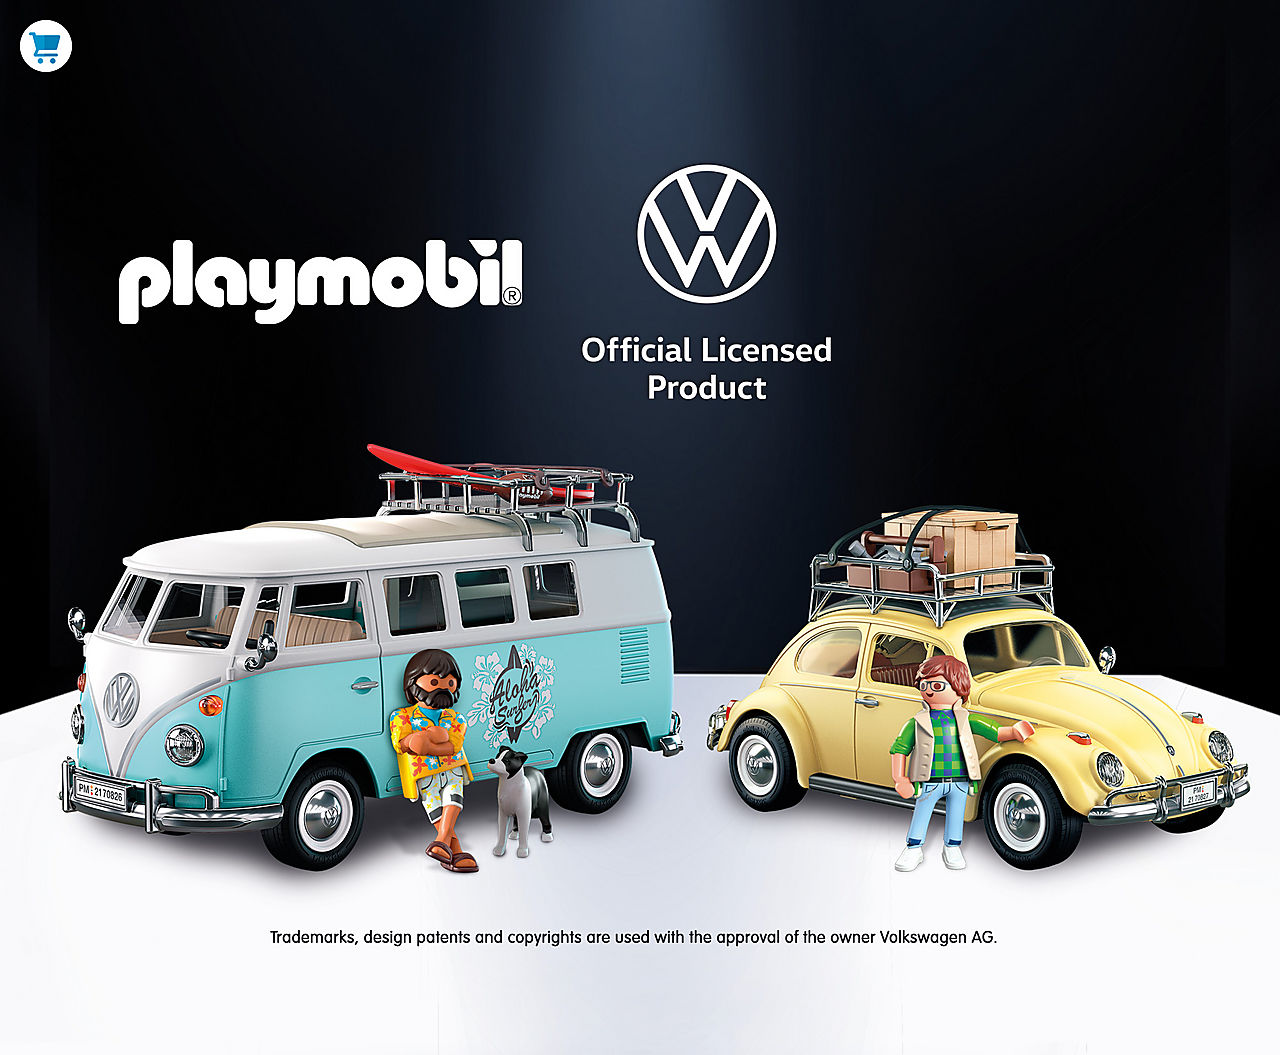 Check out the new PLAYMOBIL Volkswagen Limited Edition Collectibles with 70826 Volkswagen T1 Camping Bus - Special Edition and 70827 Volkswagen Beetle - Special Edition